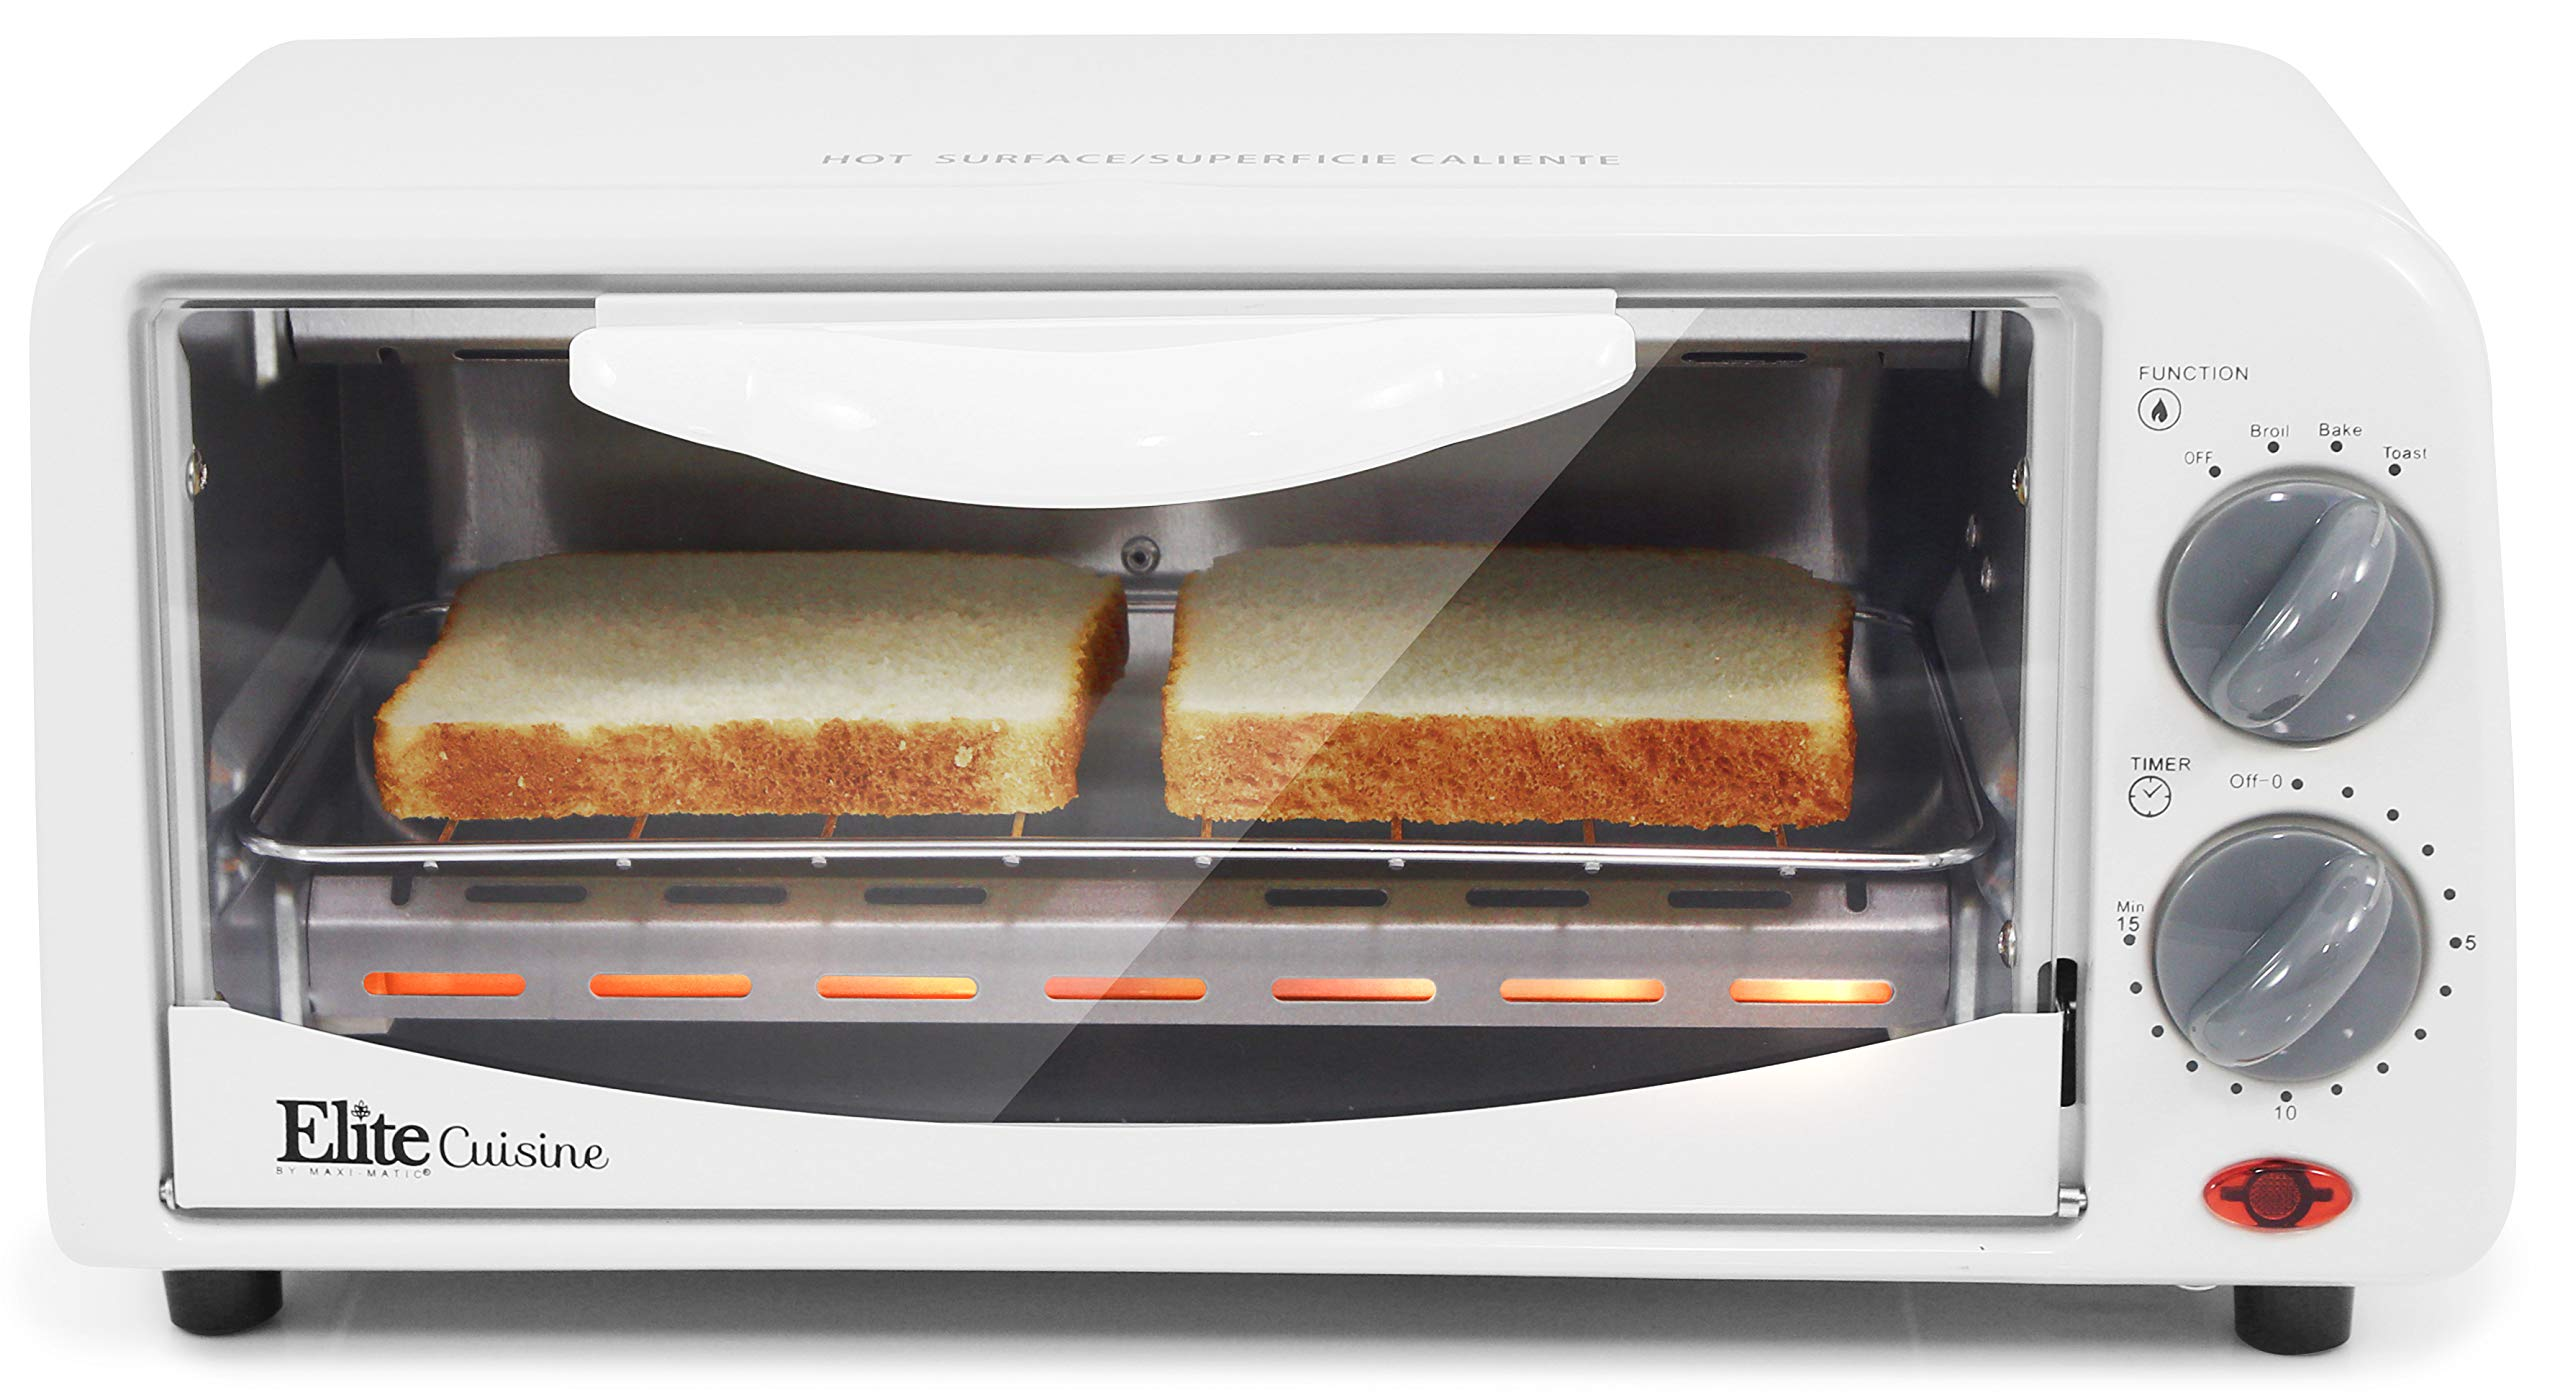 Elite Cuisine ETO-224 Personal 2 Slice Countertop Toaster Oven with 15 Minute Timer Includes Pan and Wire Rack, Bake, Broil, Toast by Maxi-Matic